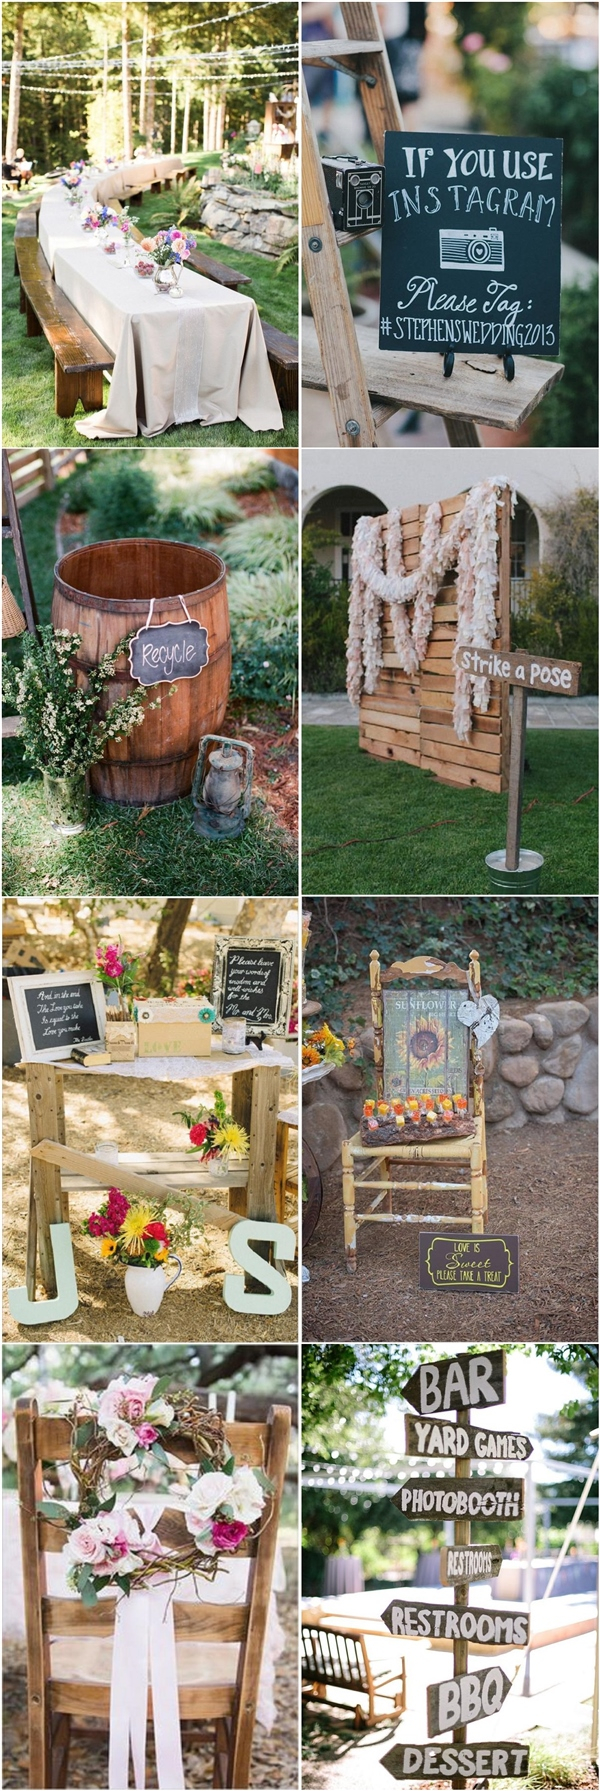 Backyard Wedding Decoration Ideas 35 Rustic Backyard Wedding Decoration Ideas Deer Pearl Flowers